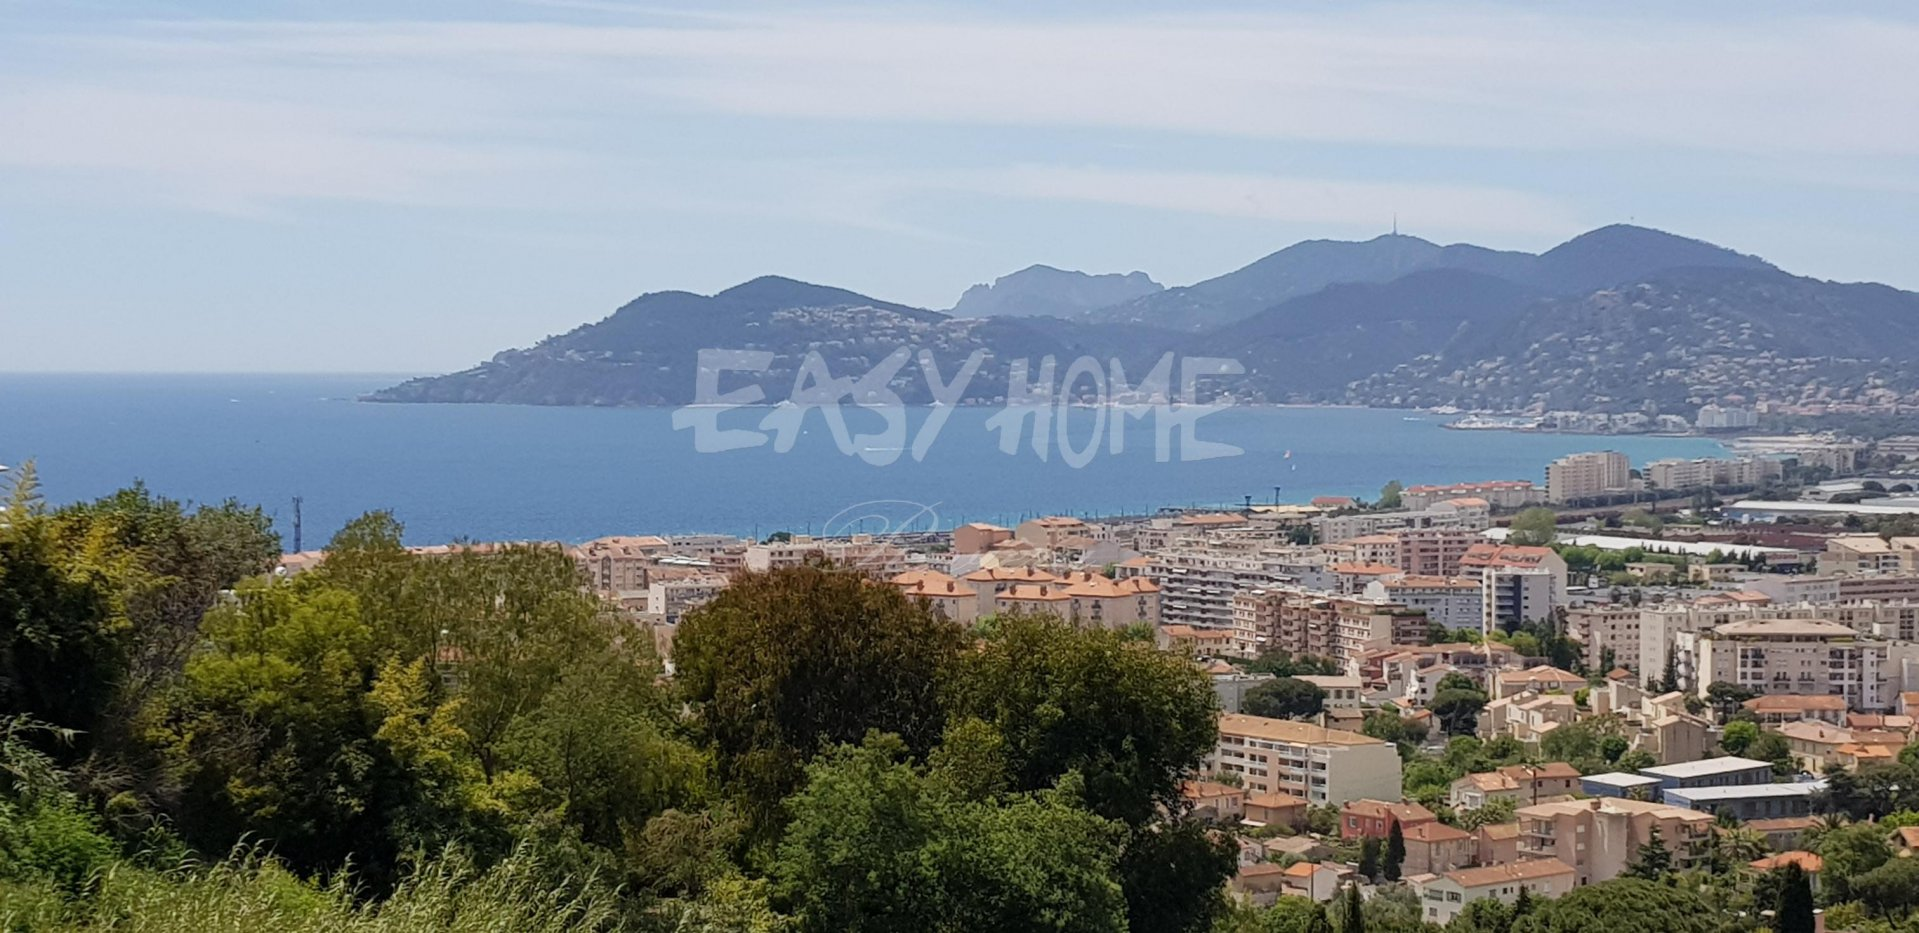 Purchase / Sale +Building Land +Cannes +French Riviera